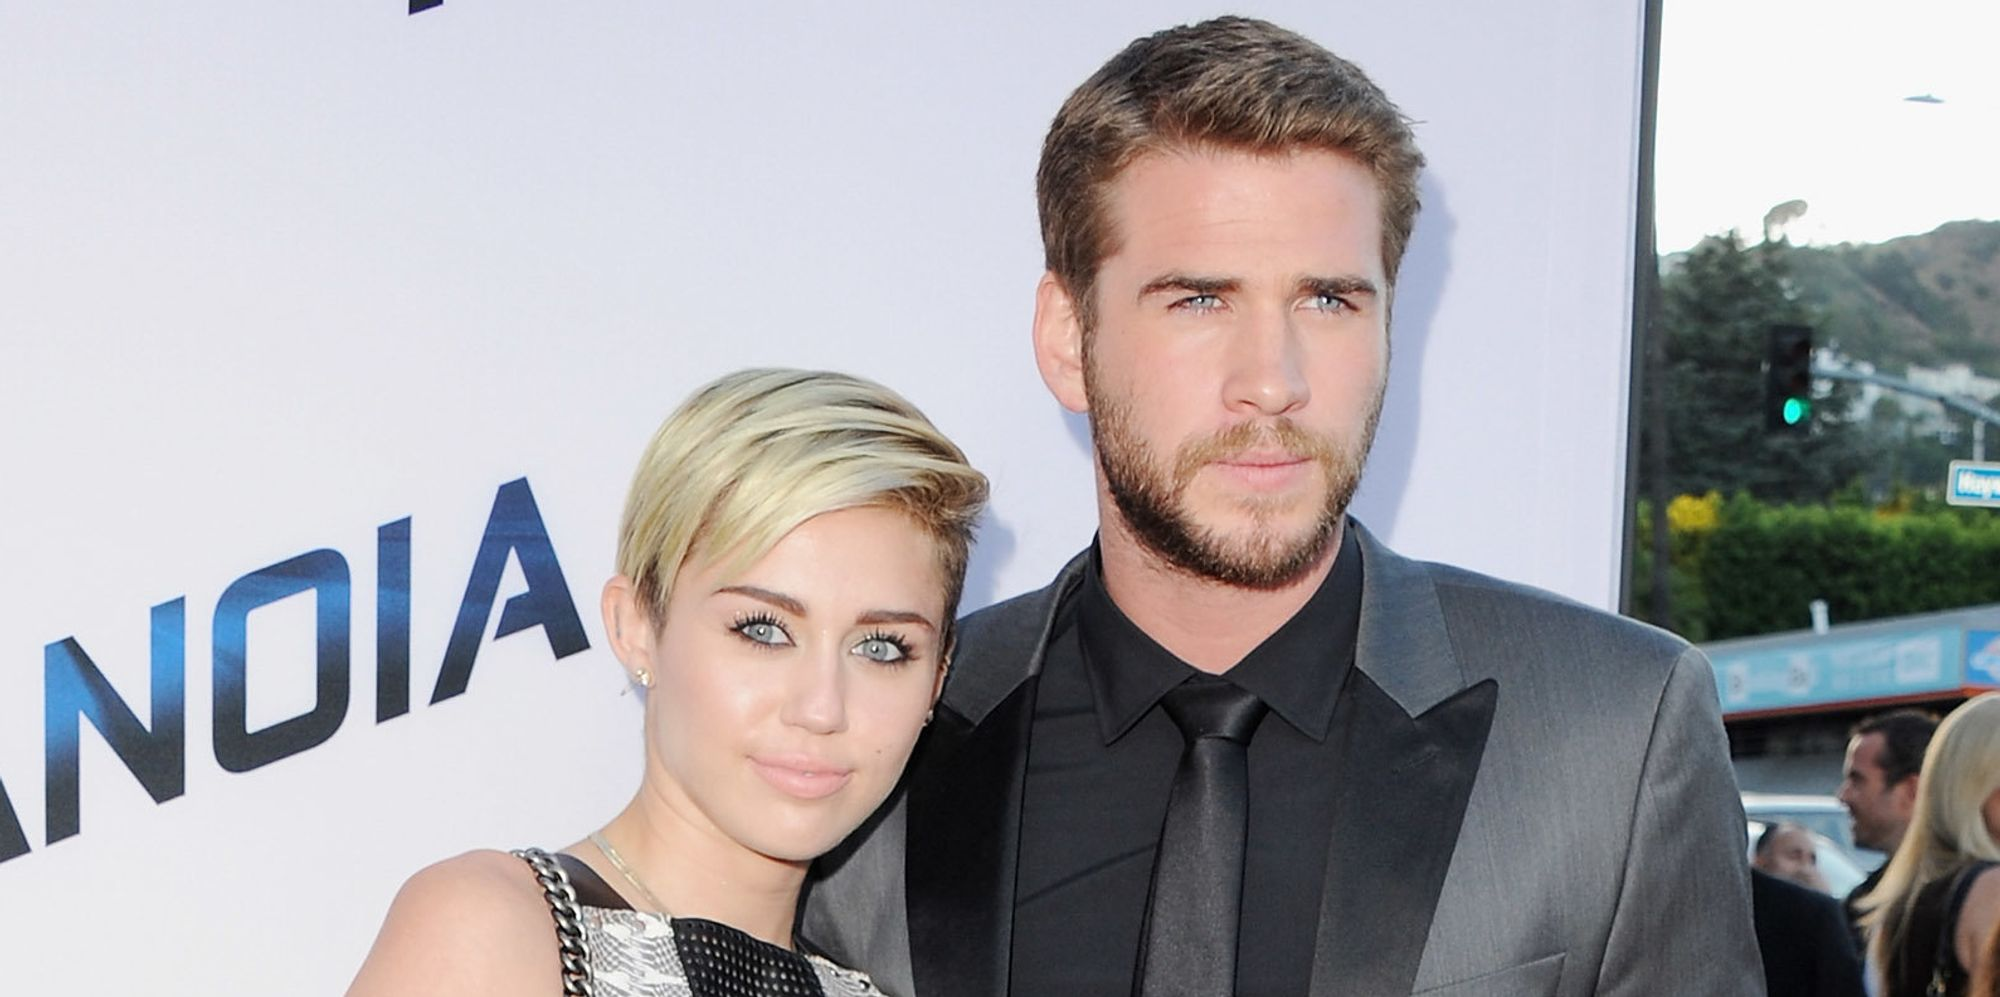 Miley Cyrus Declares Her Love For Liam Hemsworth In A Very Public Way